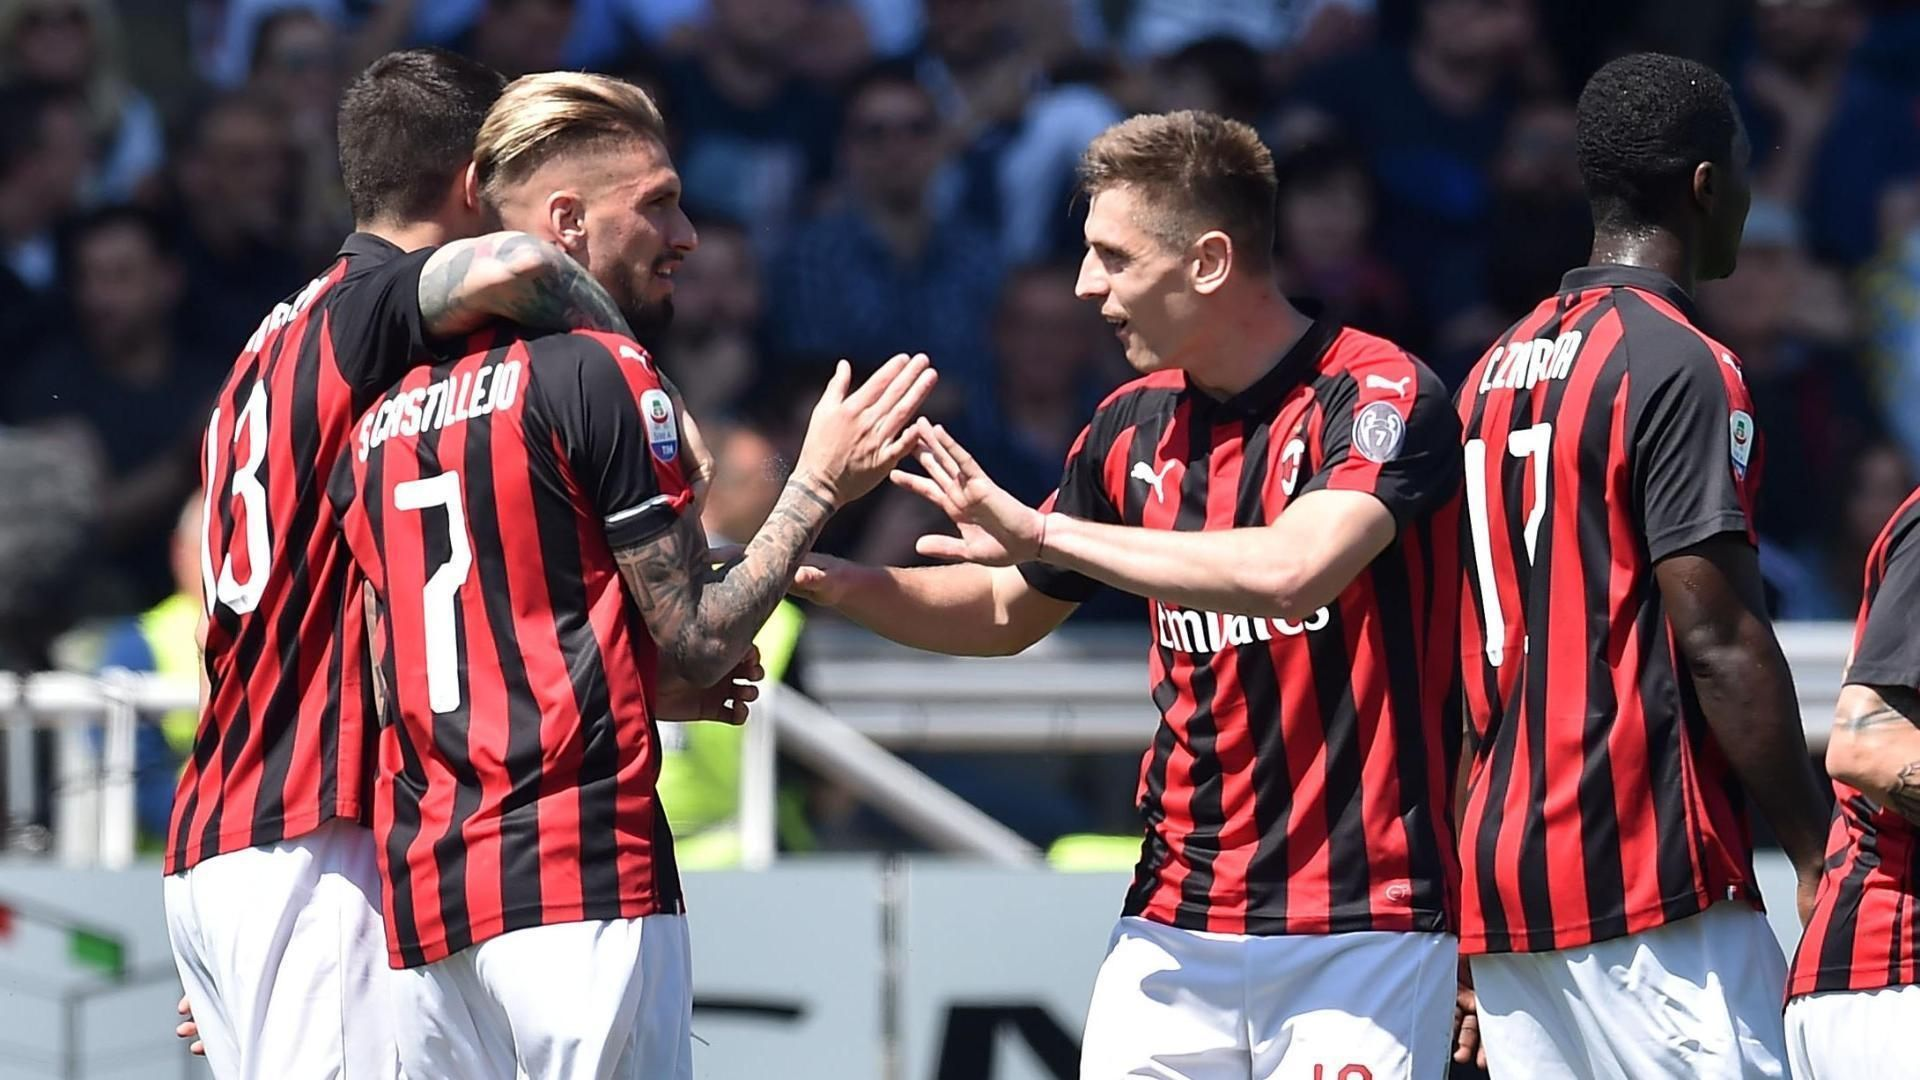 Castillejo's smart header gives Milan the lead